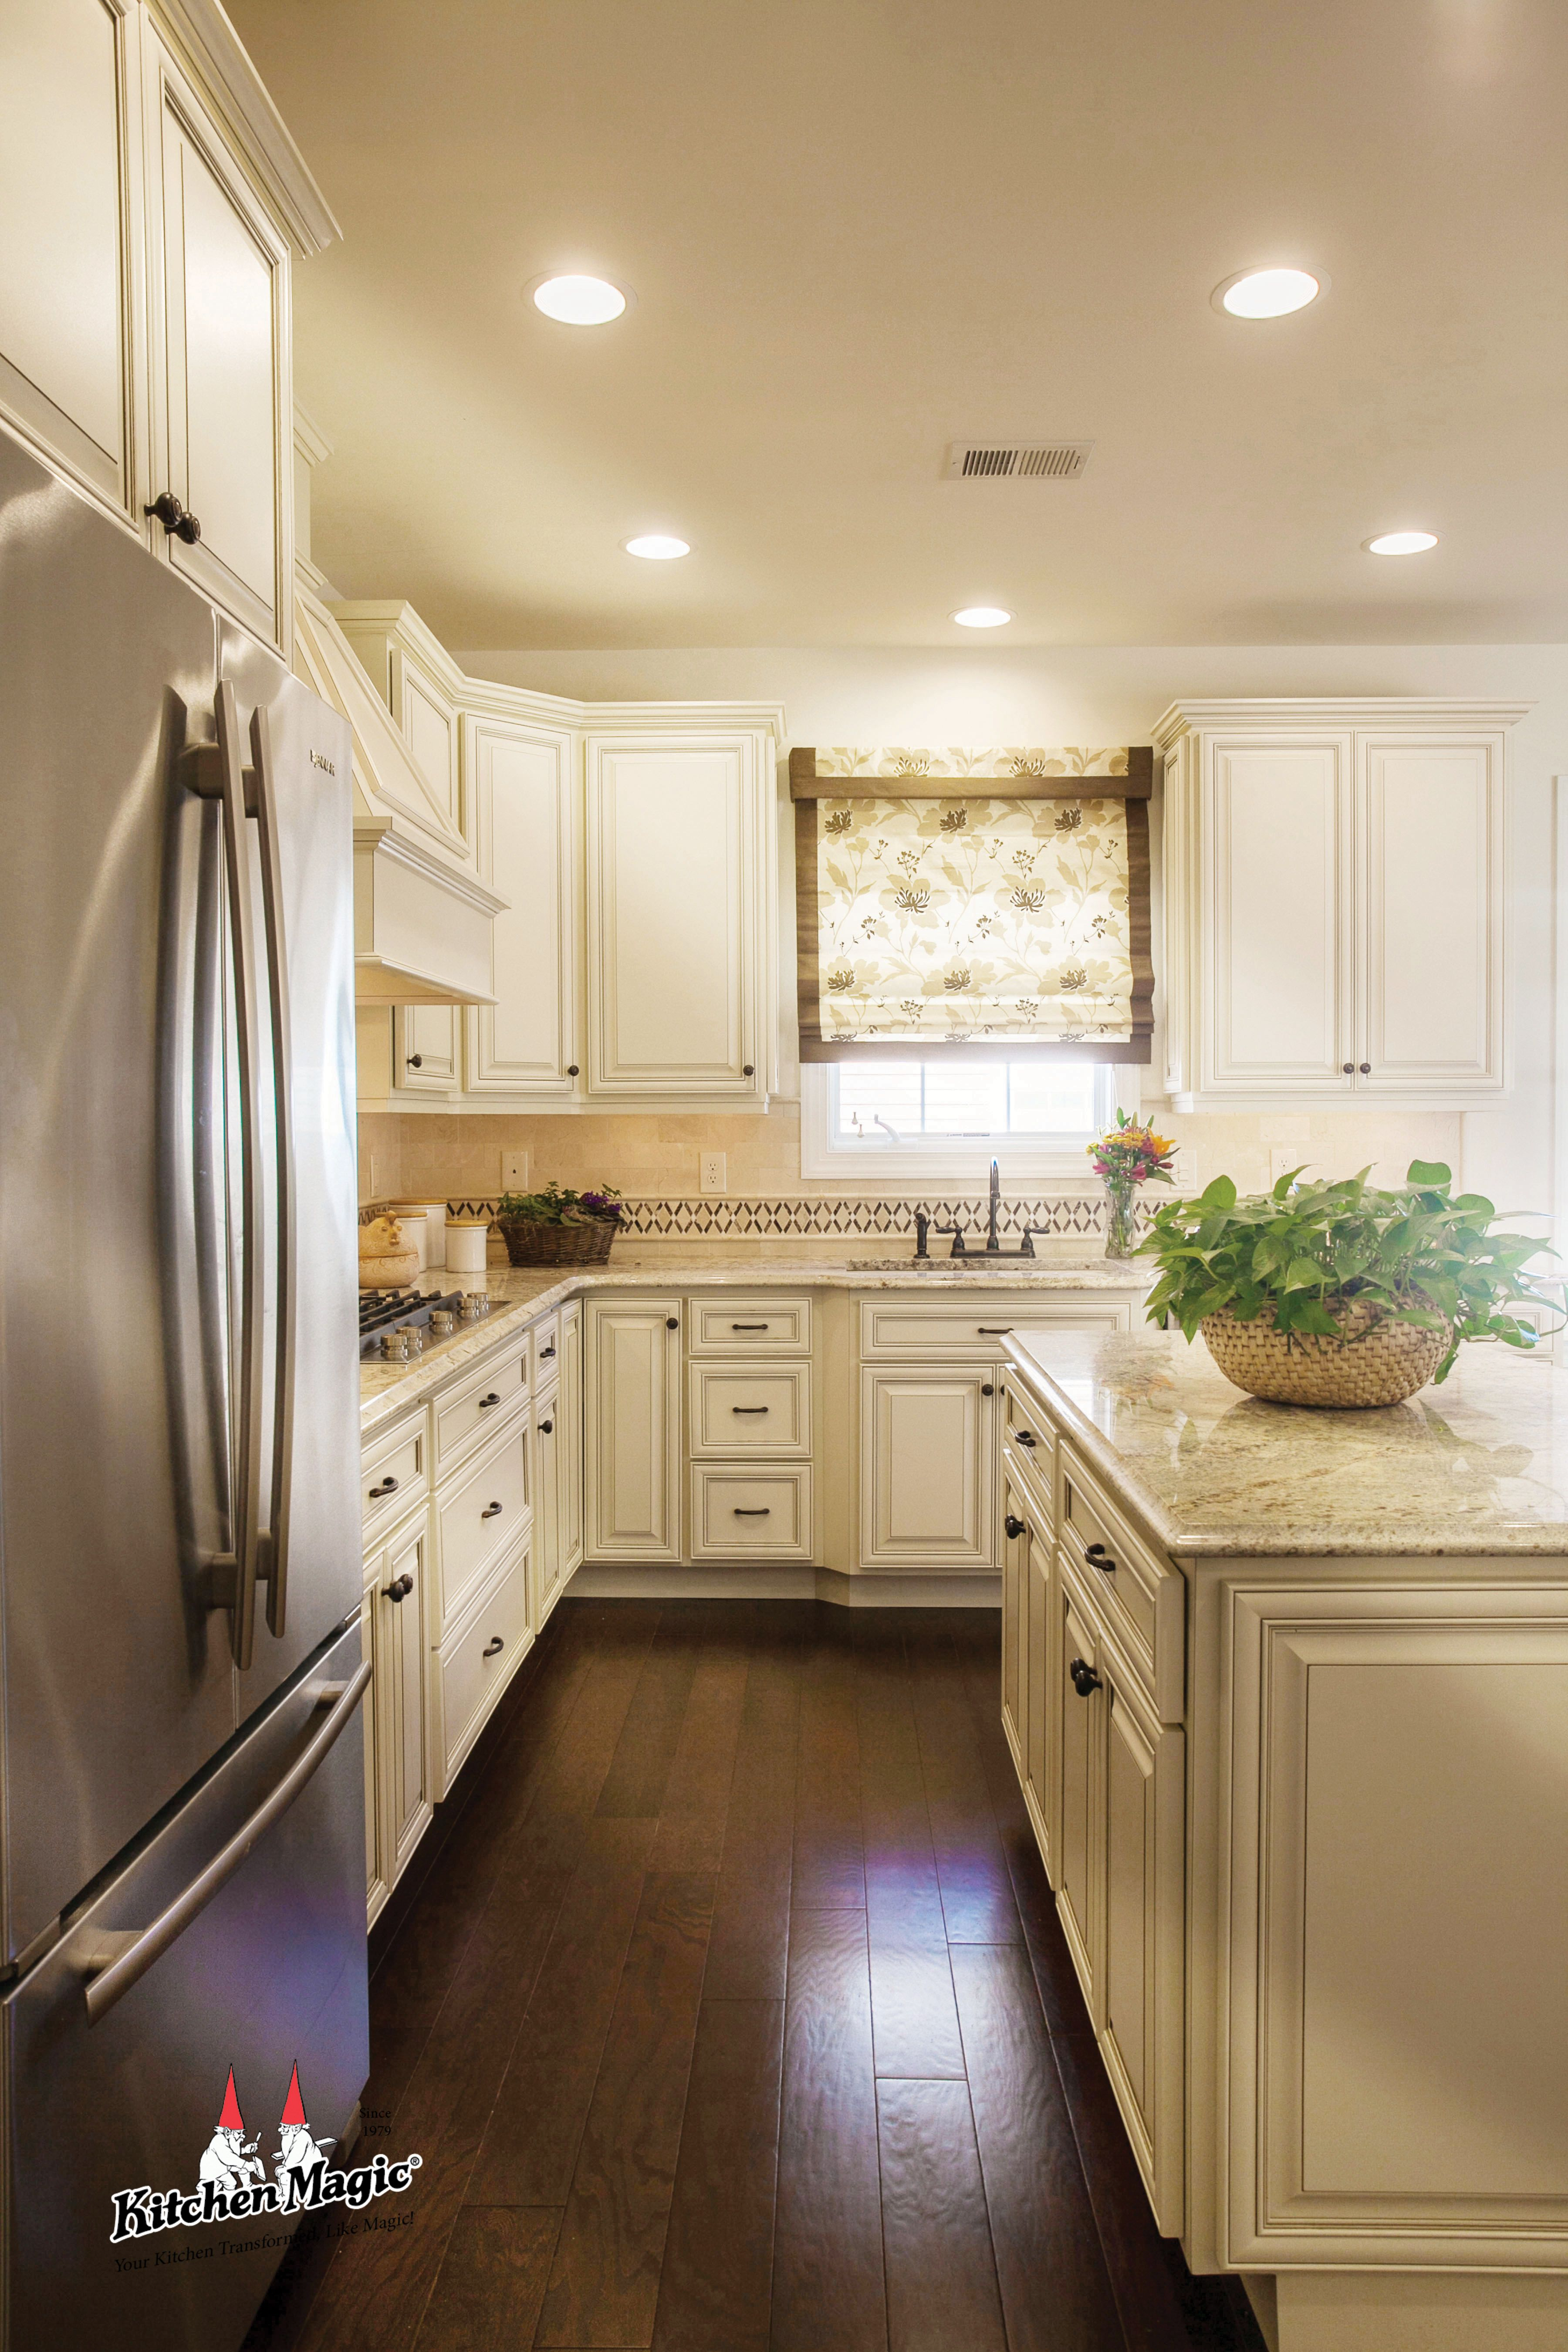 Kitchen remodel and design by Kitchen Magic. | Kitchen Cabinets ...